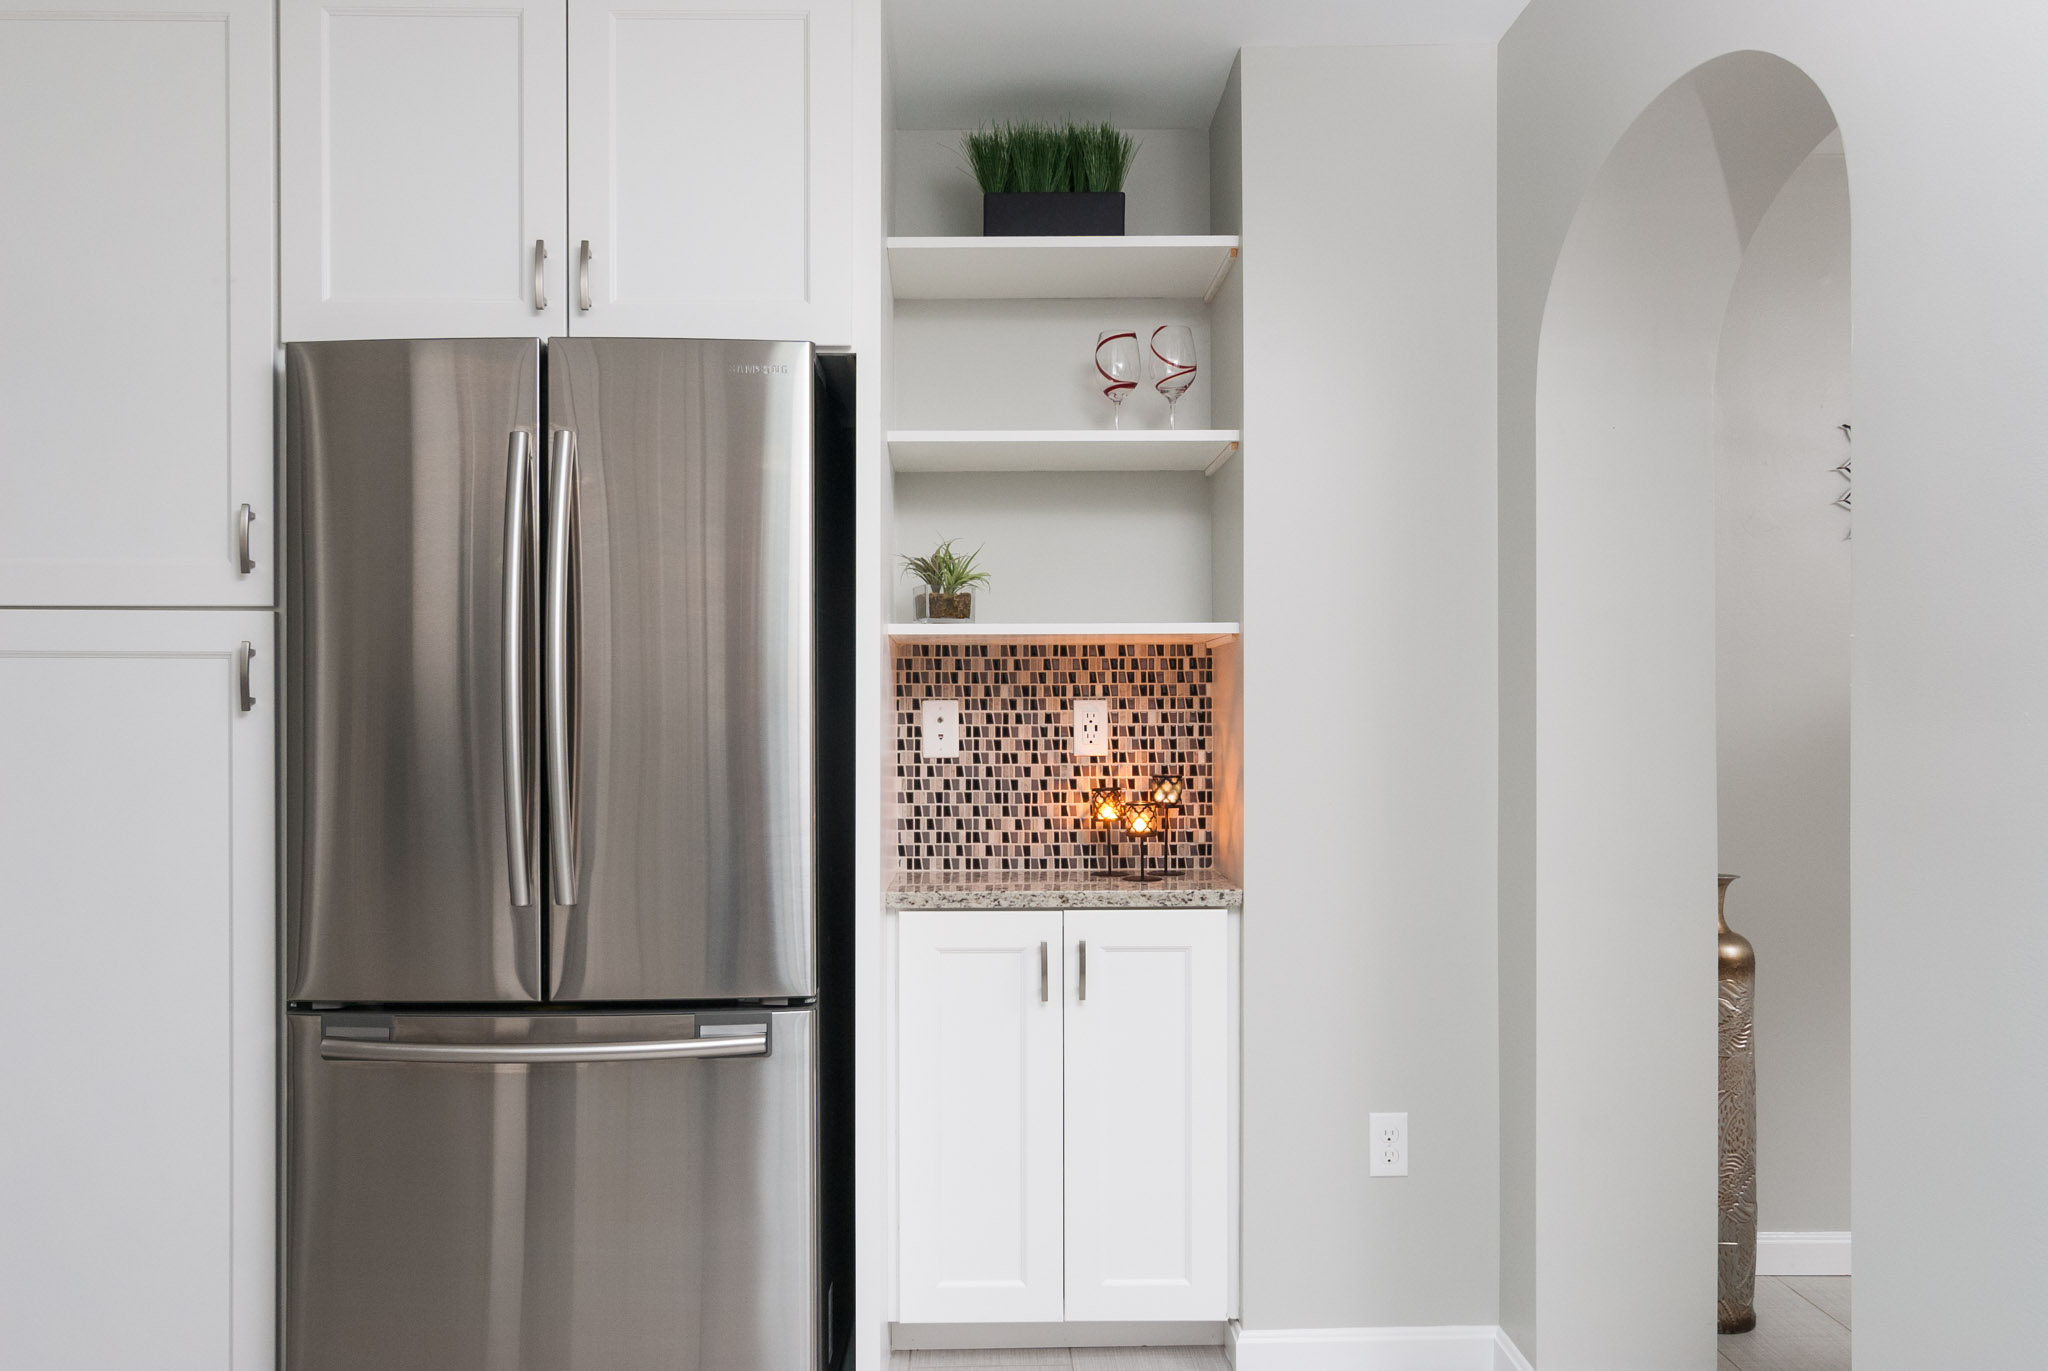 The kind of kitchen detail that I love to grab if I can.